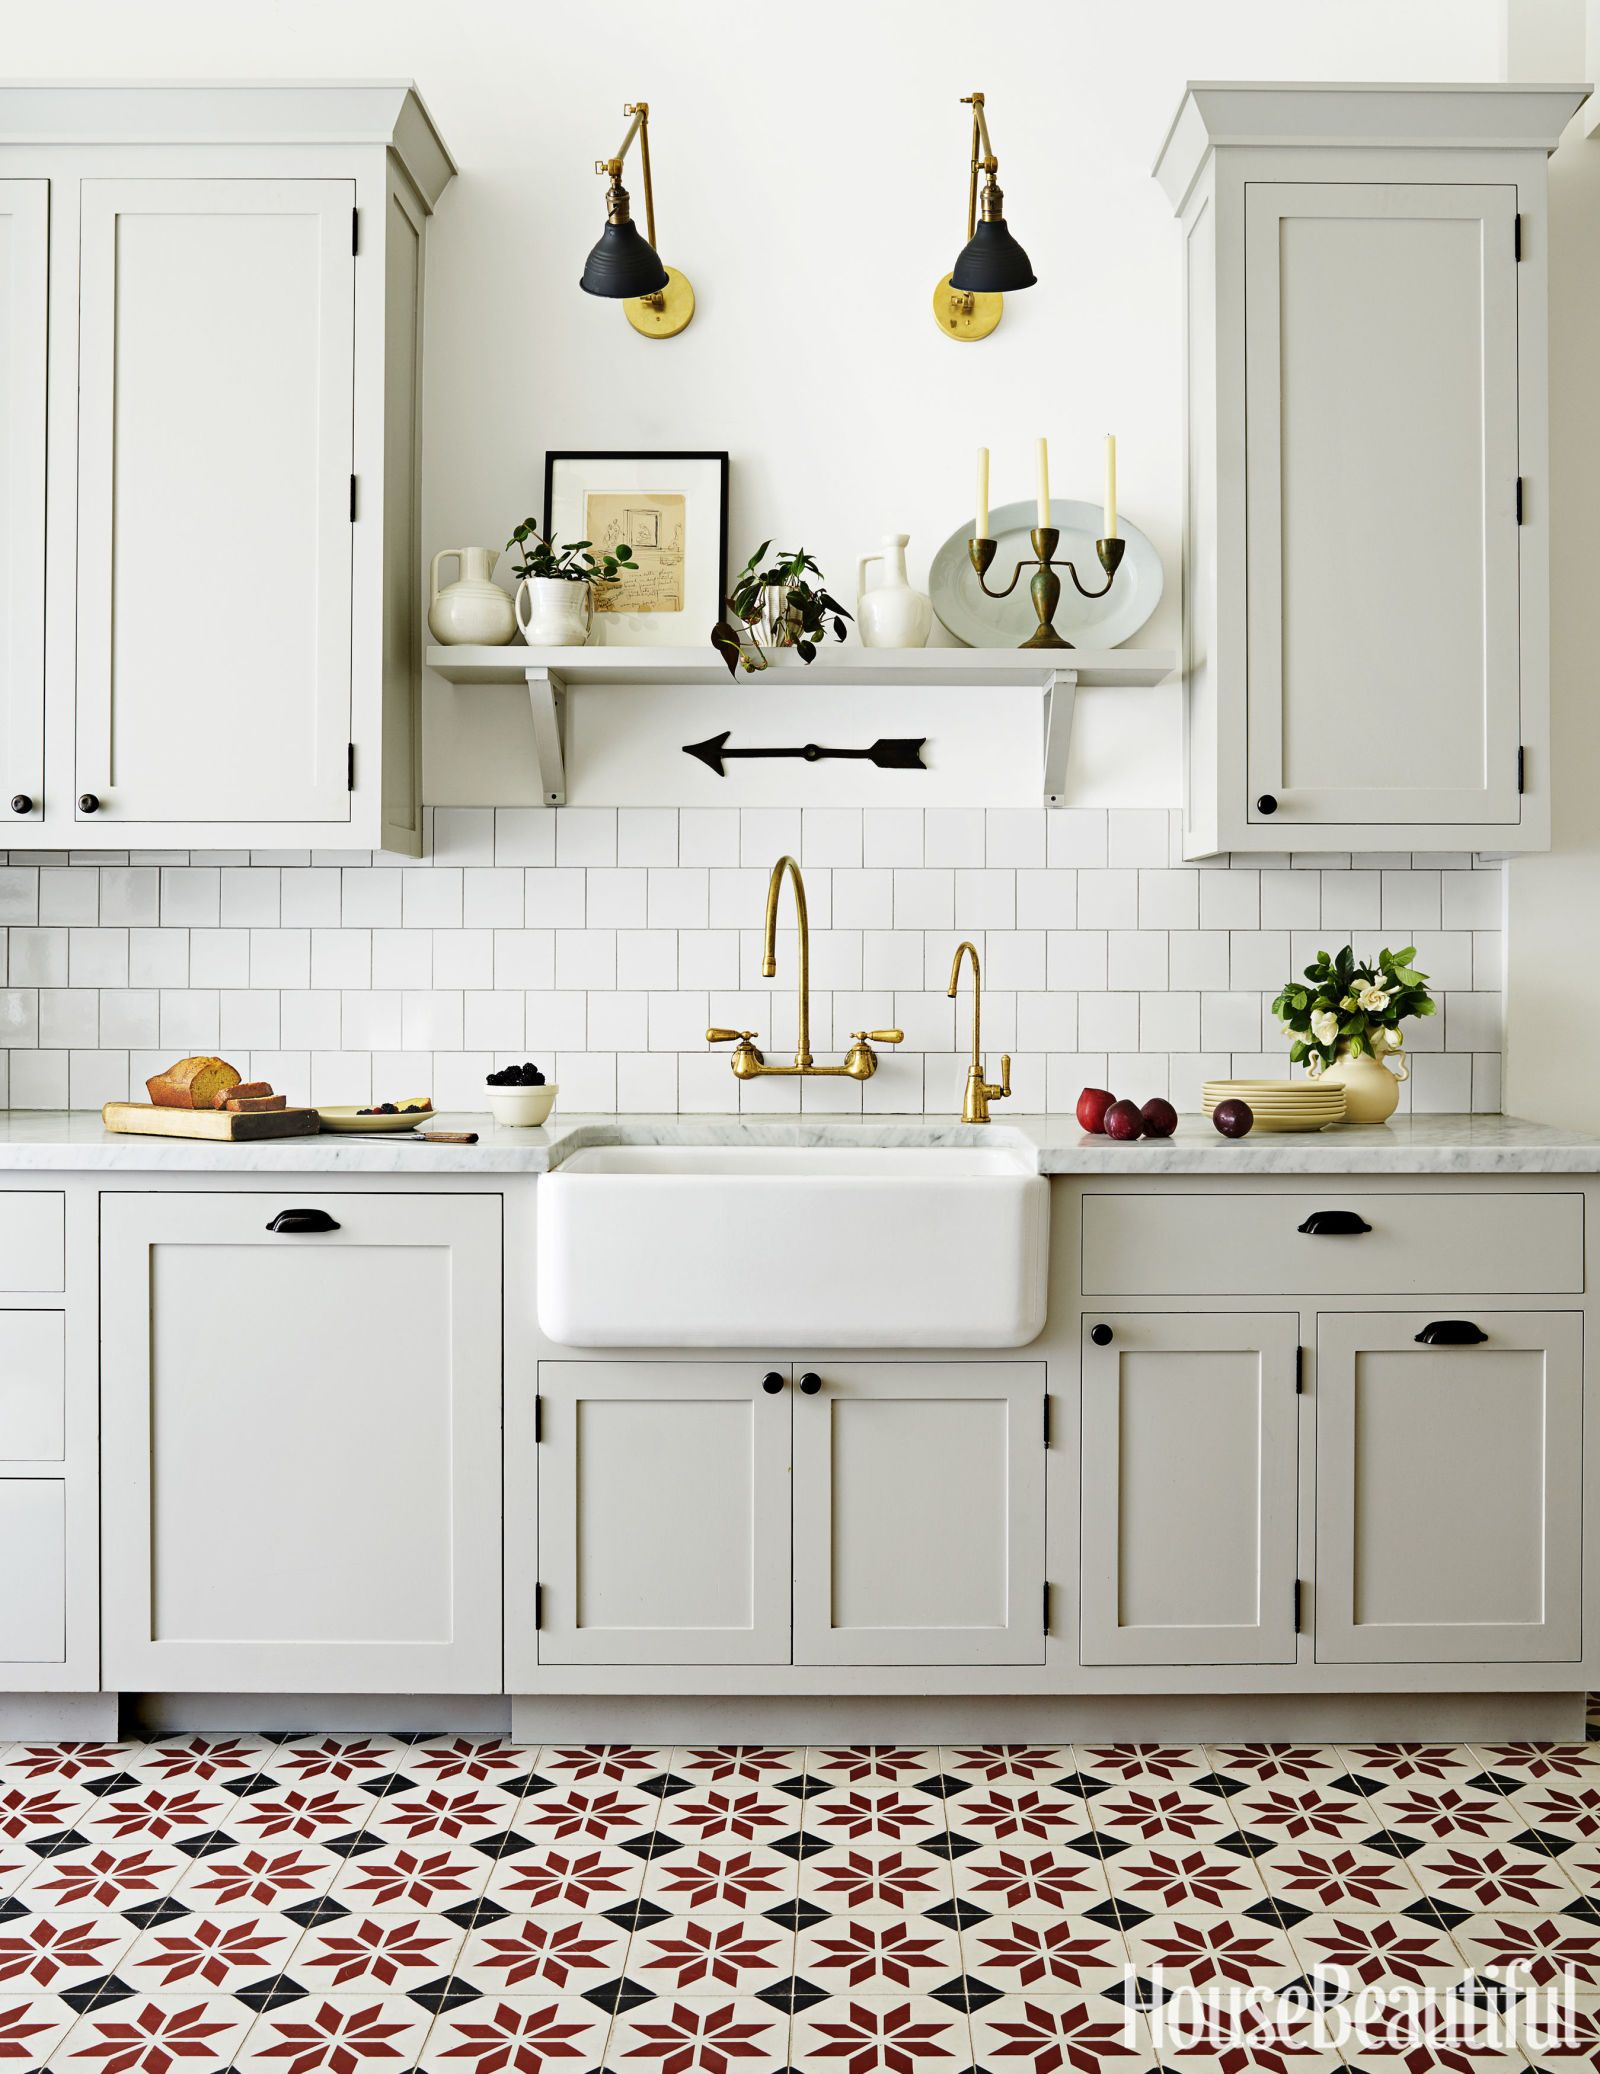 Tour an Old World Kitchen With Some Seriously Surprising Floors in ...